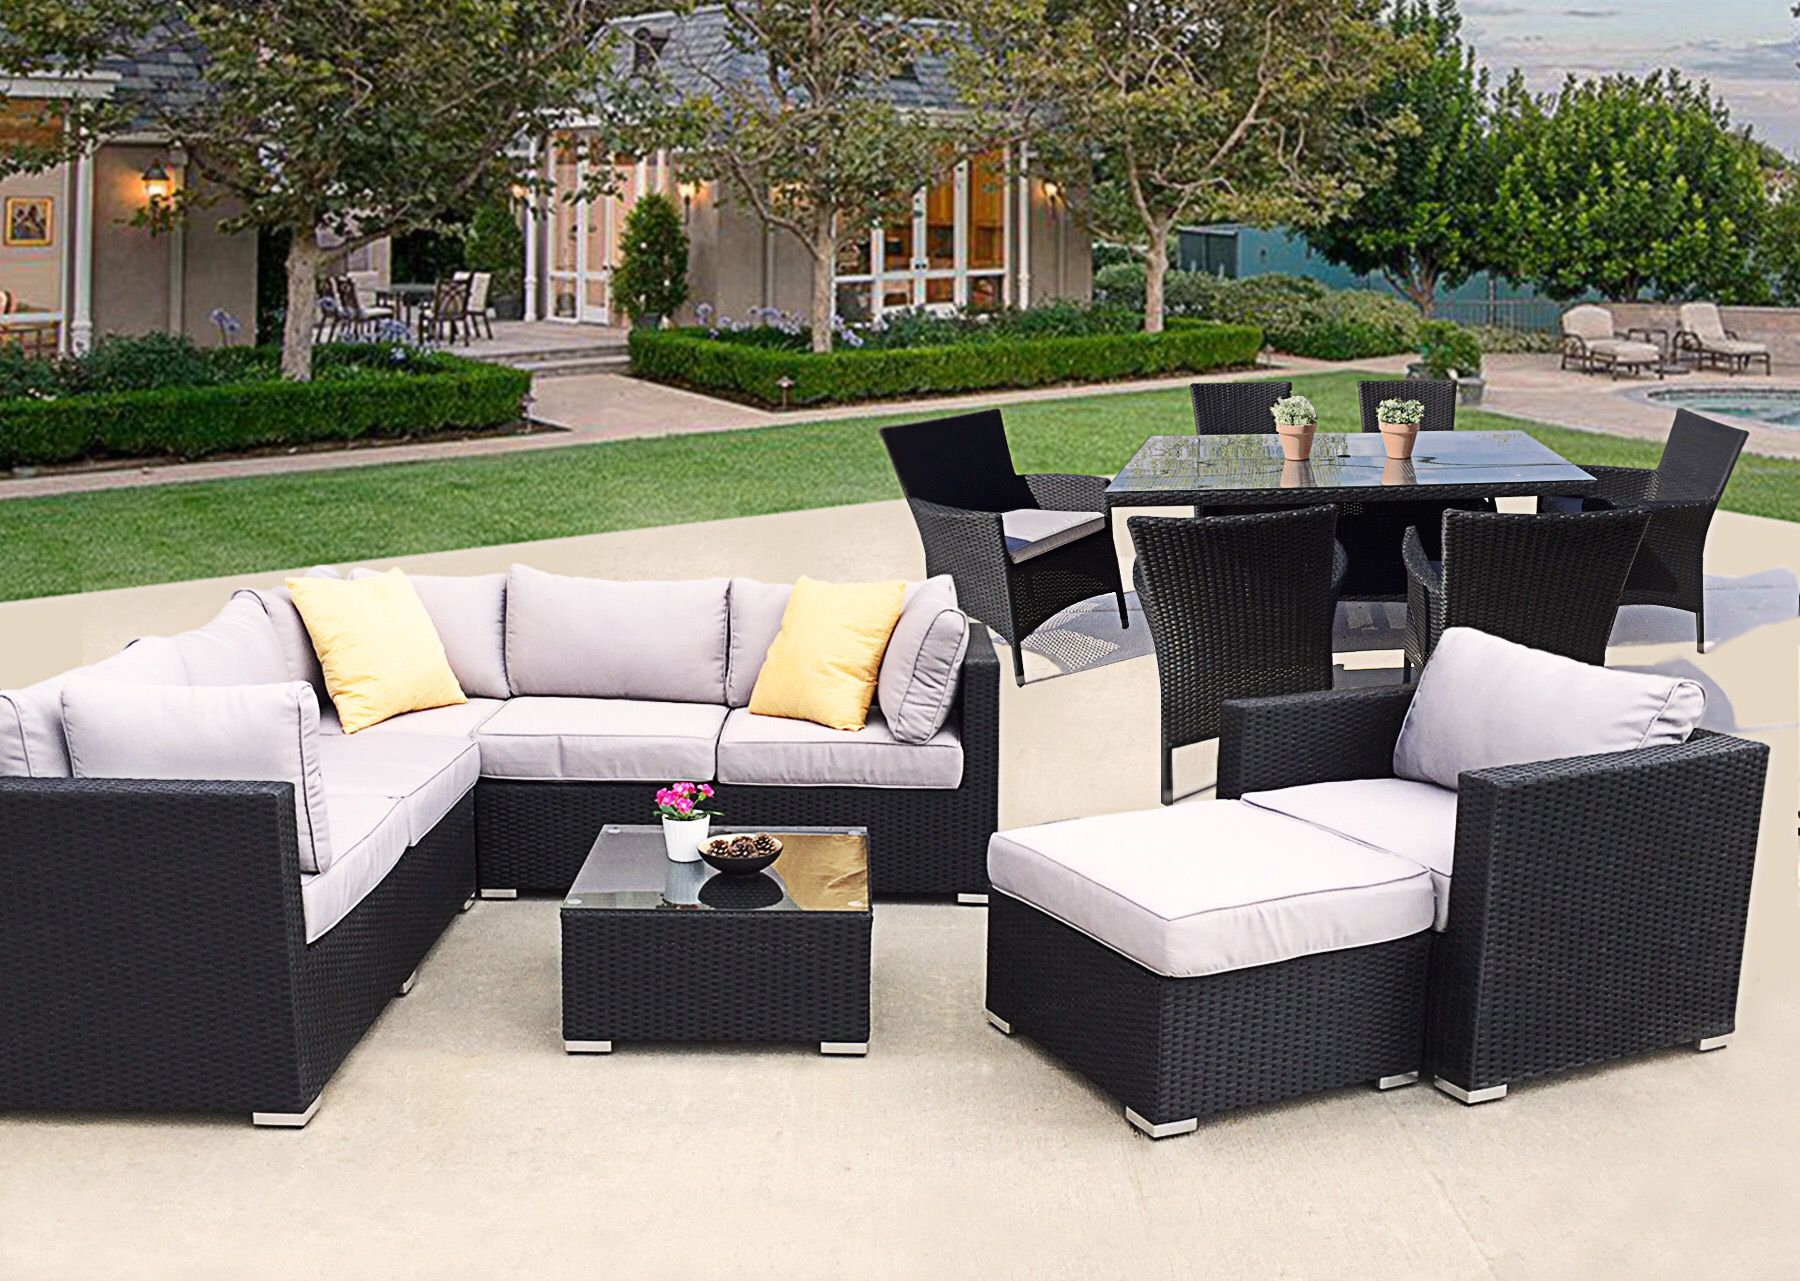 With This Set You Can Add And Arrange Pieces To Fit Your Space Quality Modern Patio Furniture And Modern Patio Furniture Modern Patio Outdoor Furniture Sets